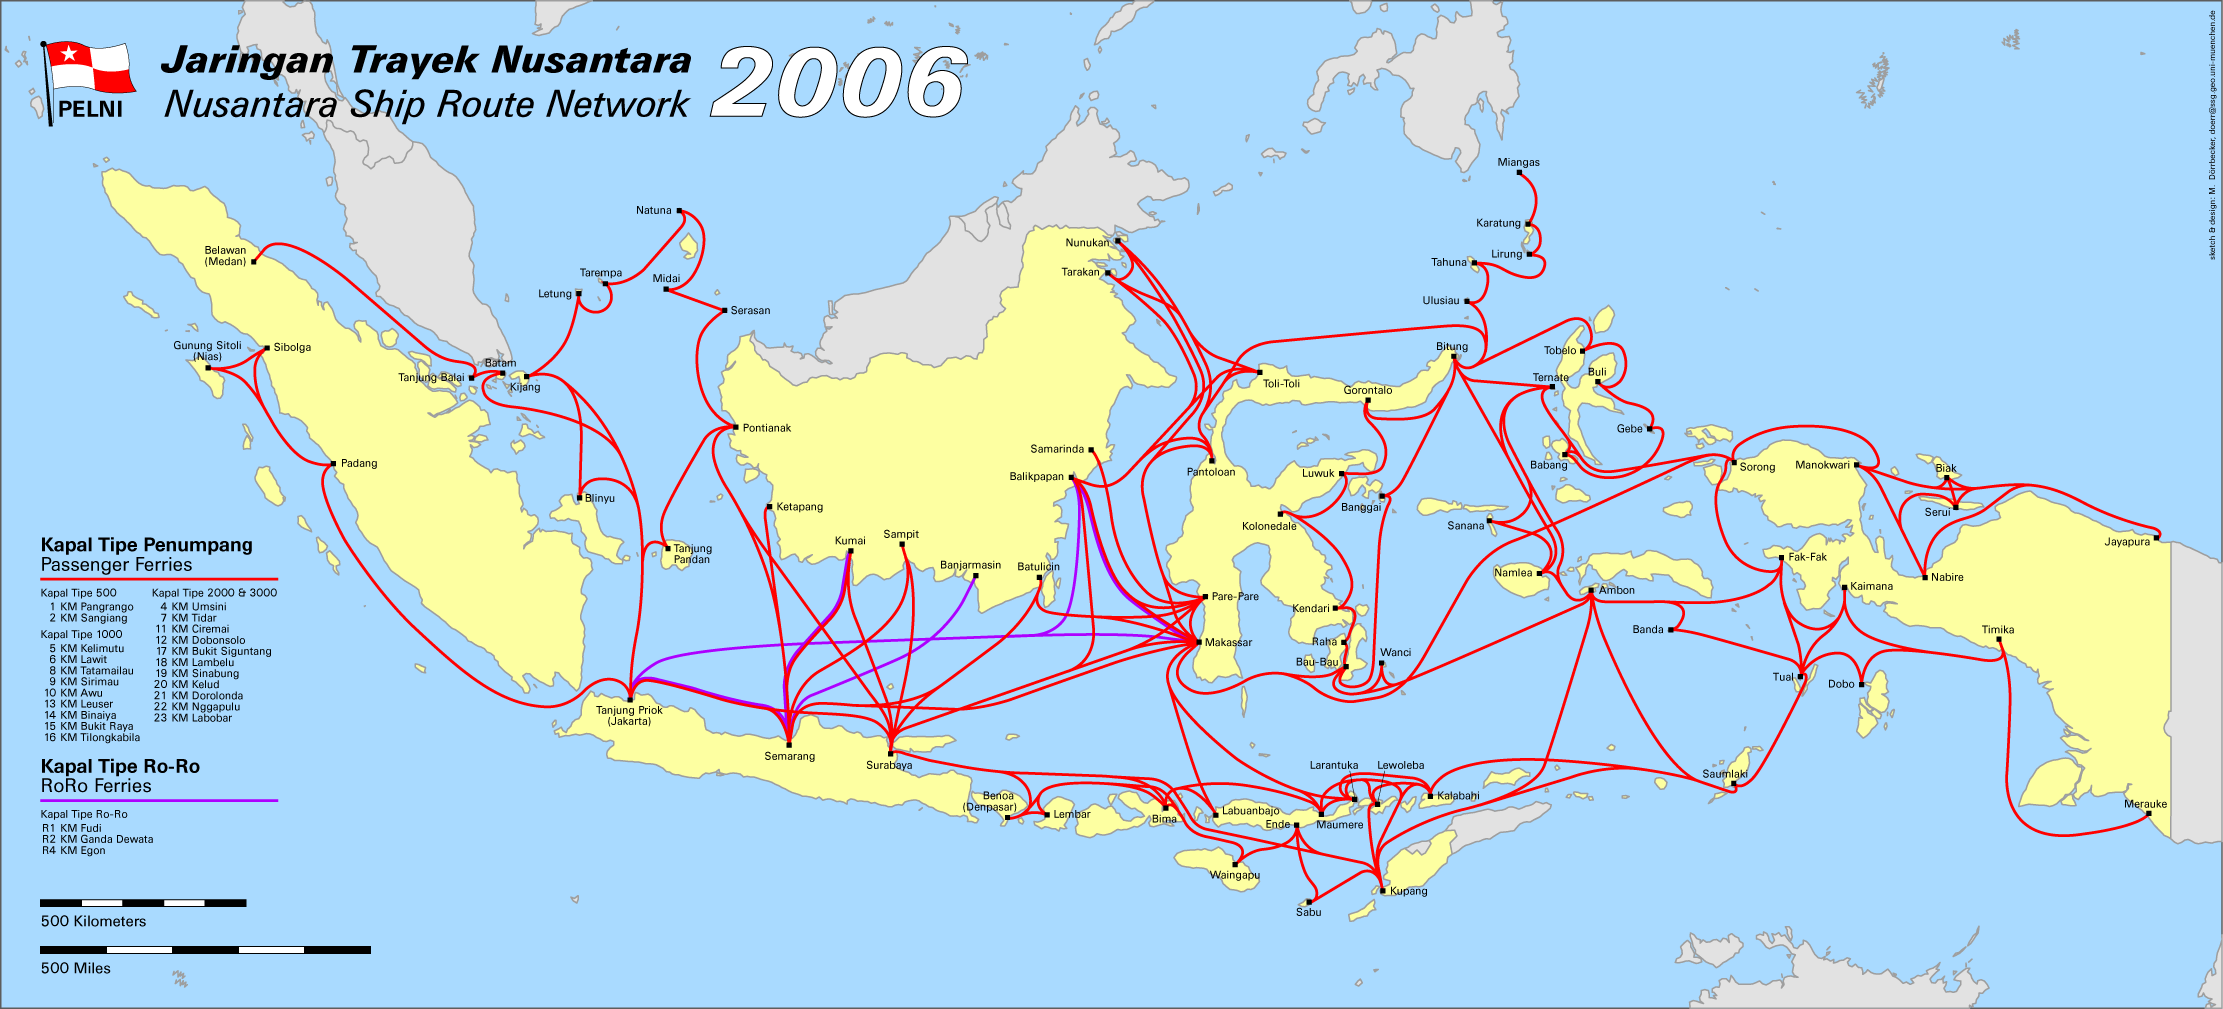 Train travel in indonesia trains jakarta surabaya ferry to bali this penli ferry route map gumiabroncs Image collections